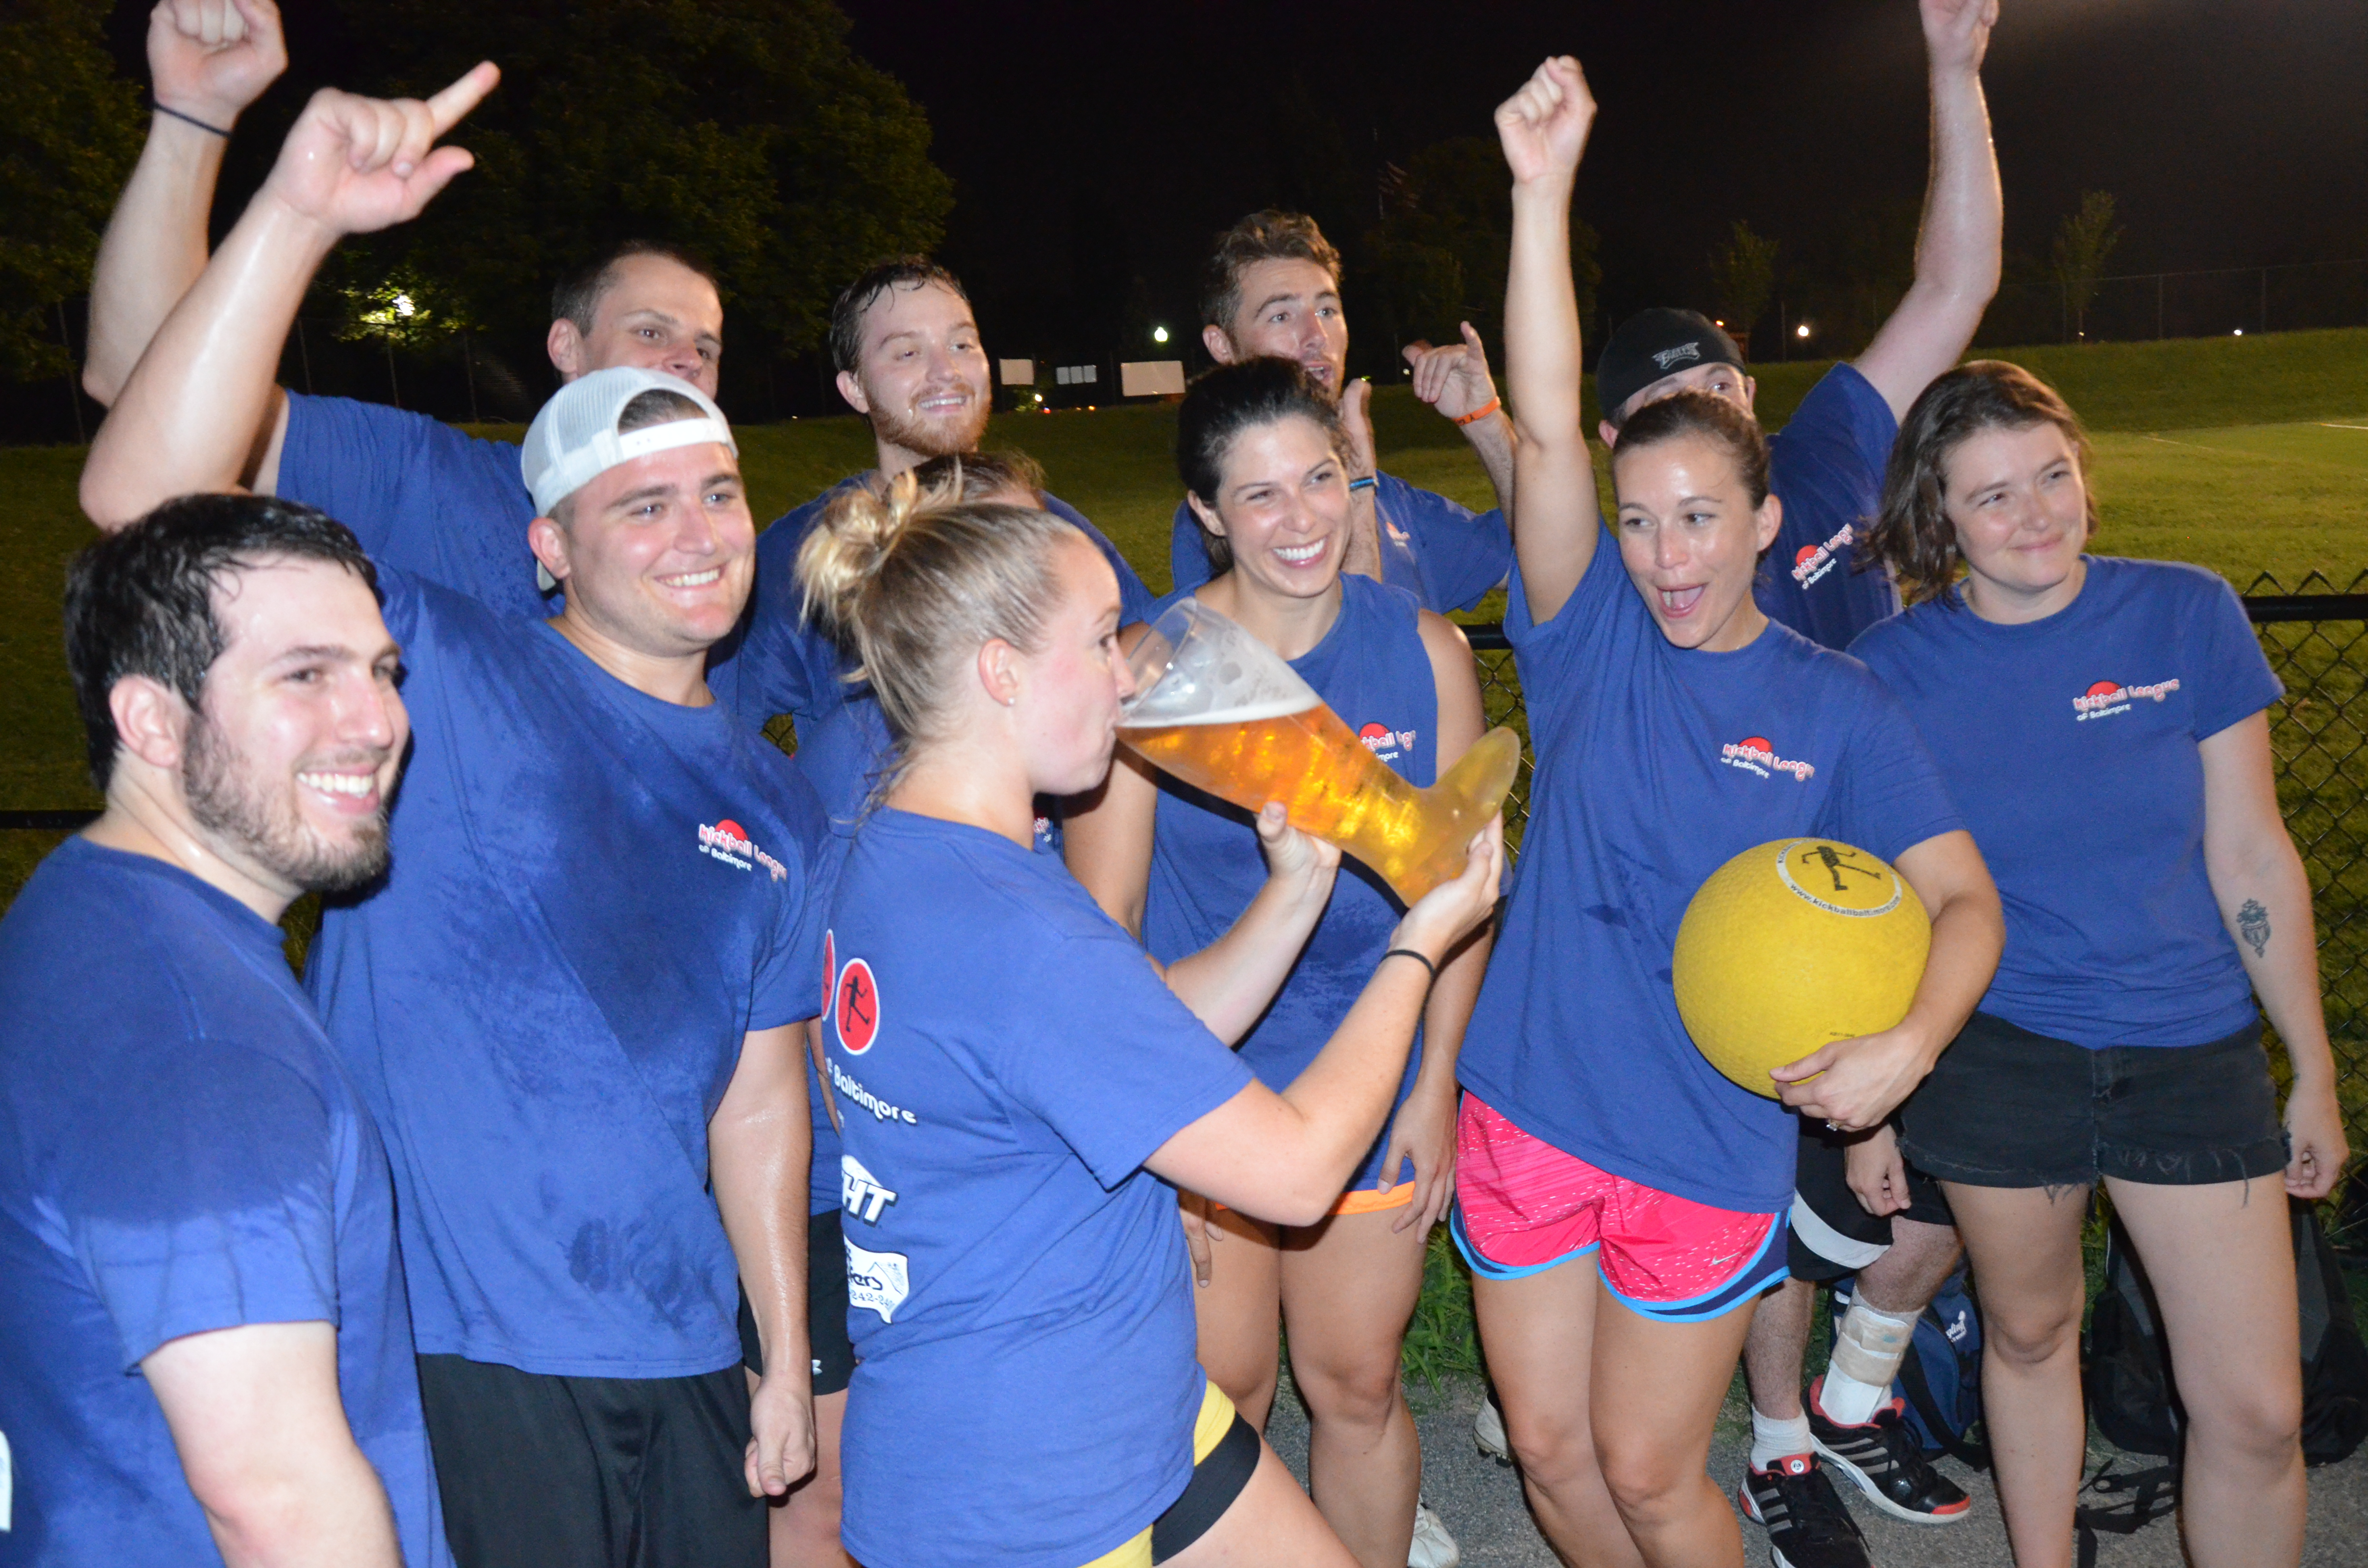 Kickball League of Baltimore